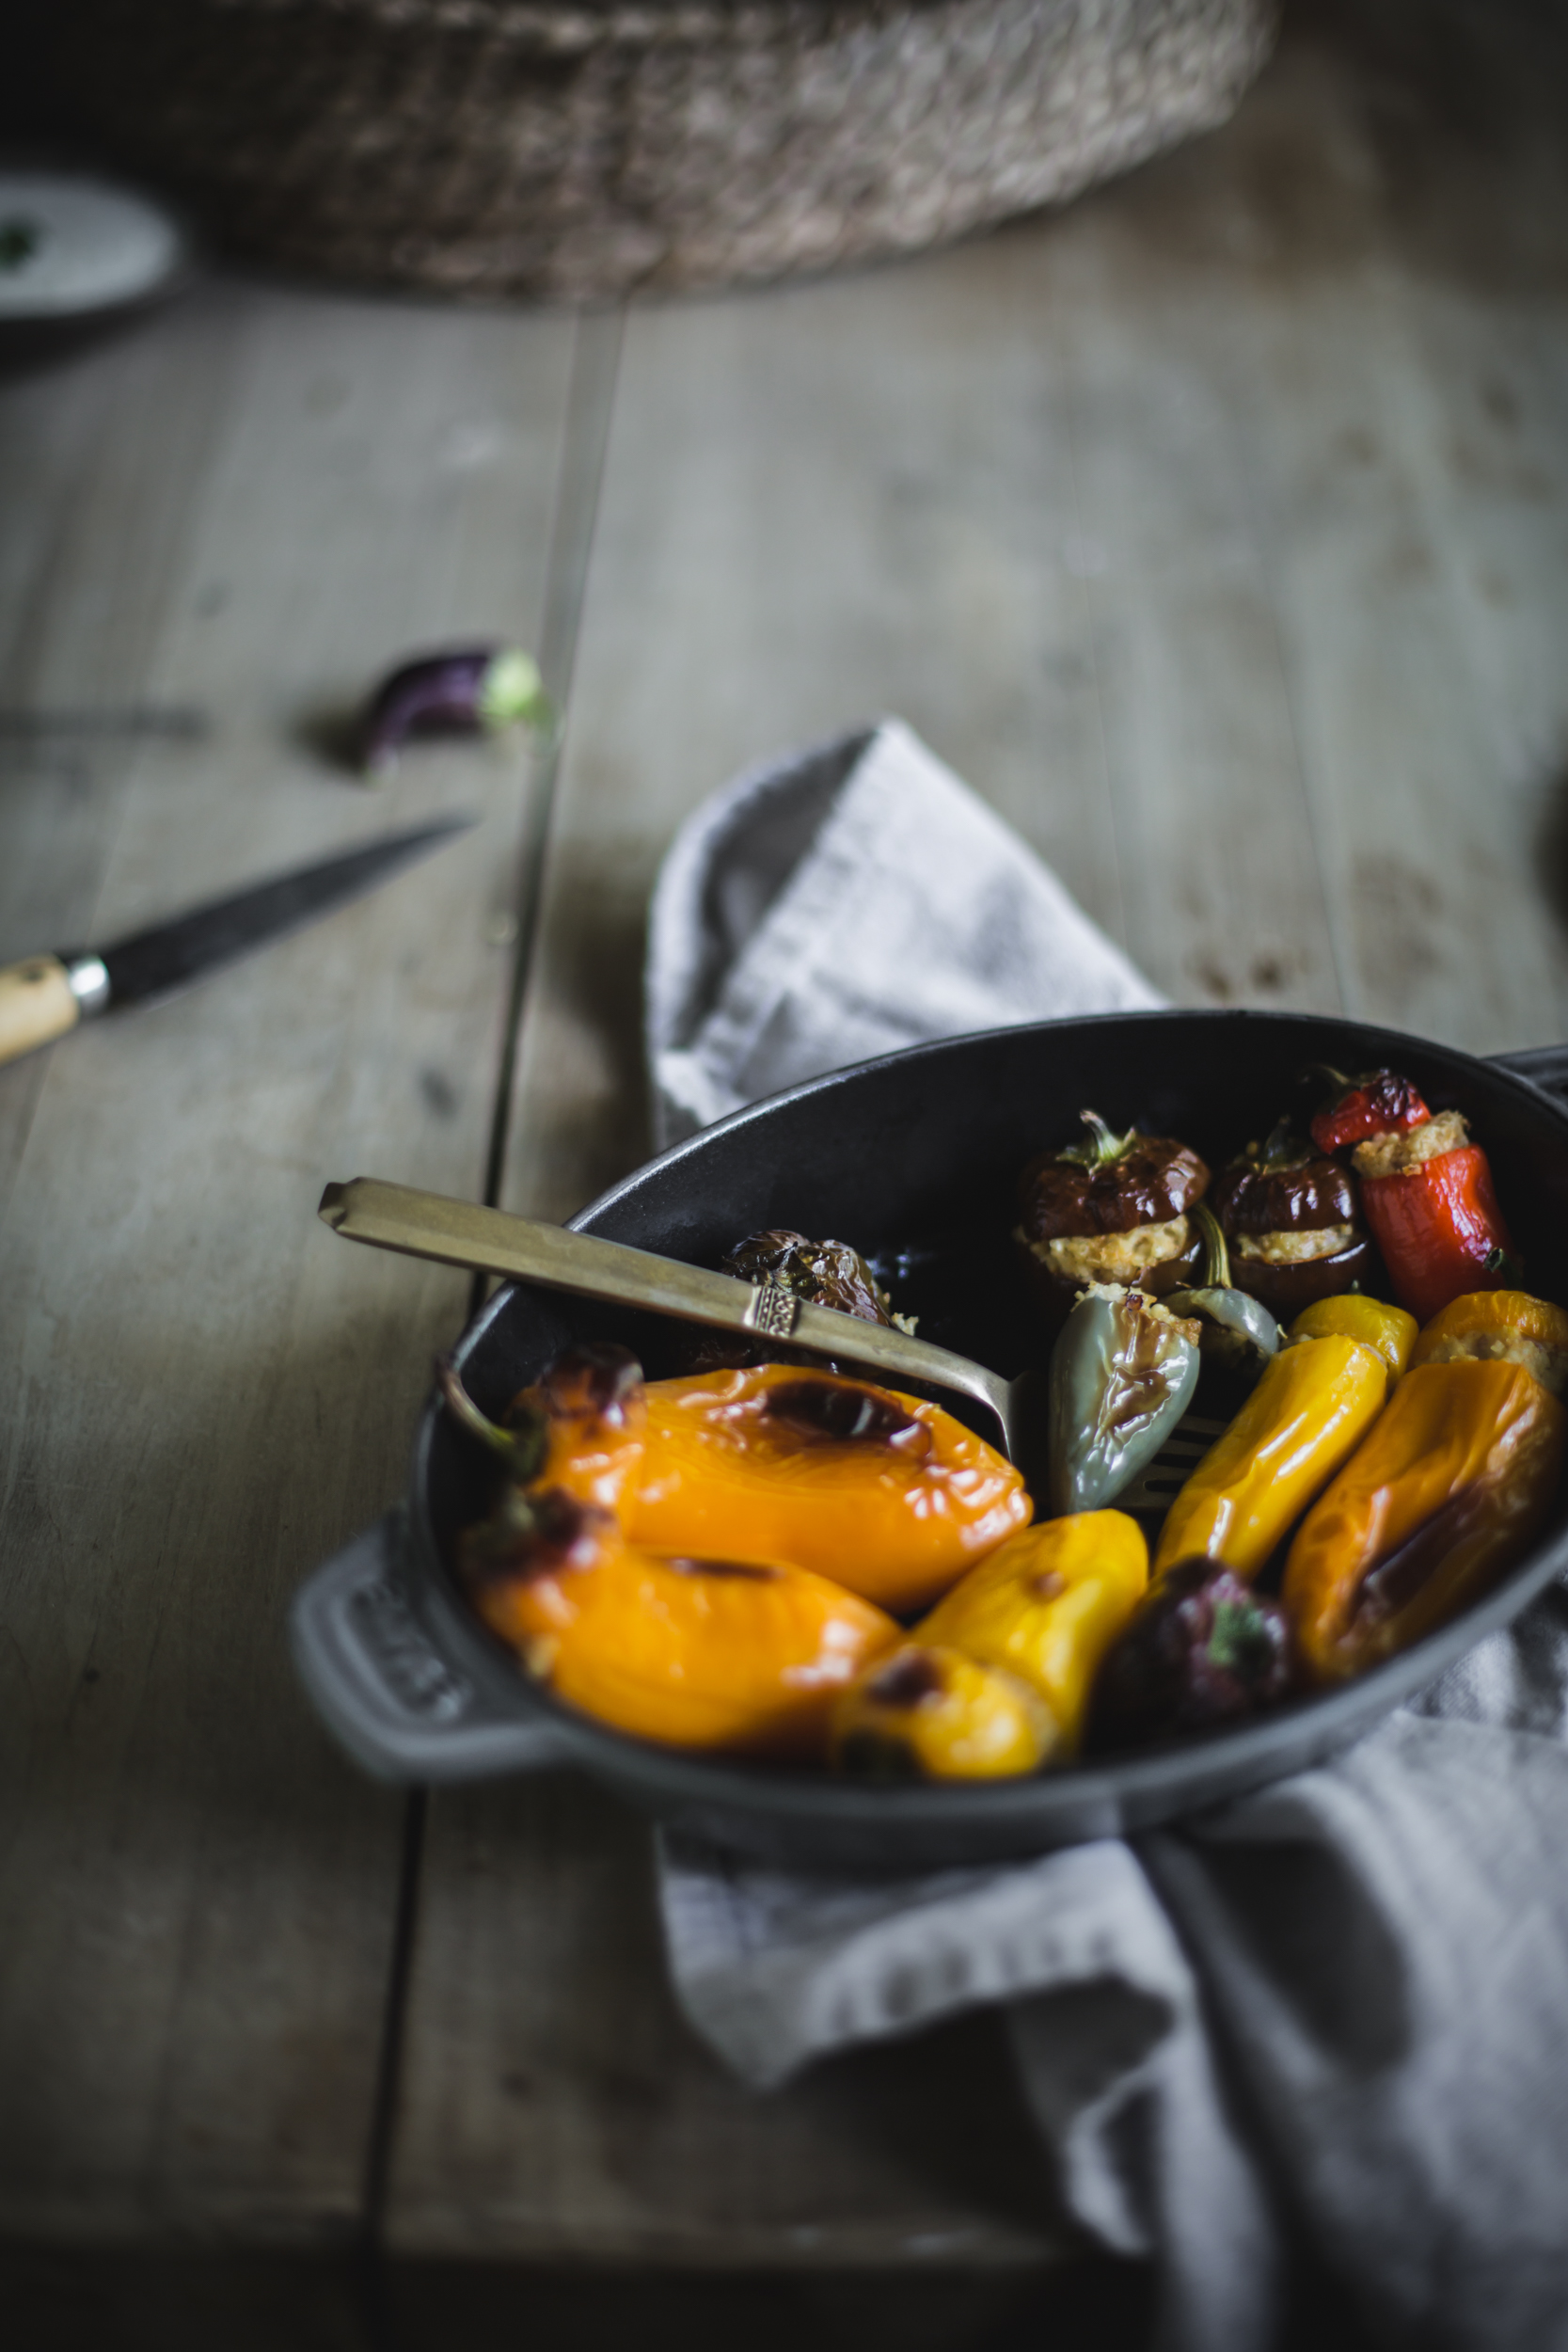 stuffed-peppers-by-eva-kosmas-flores-9